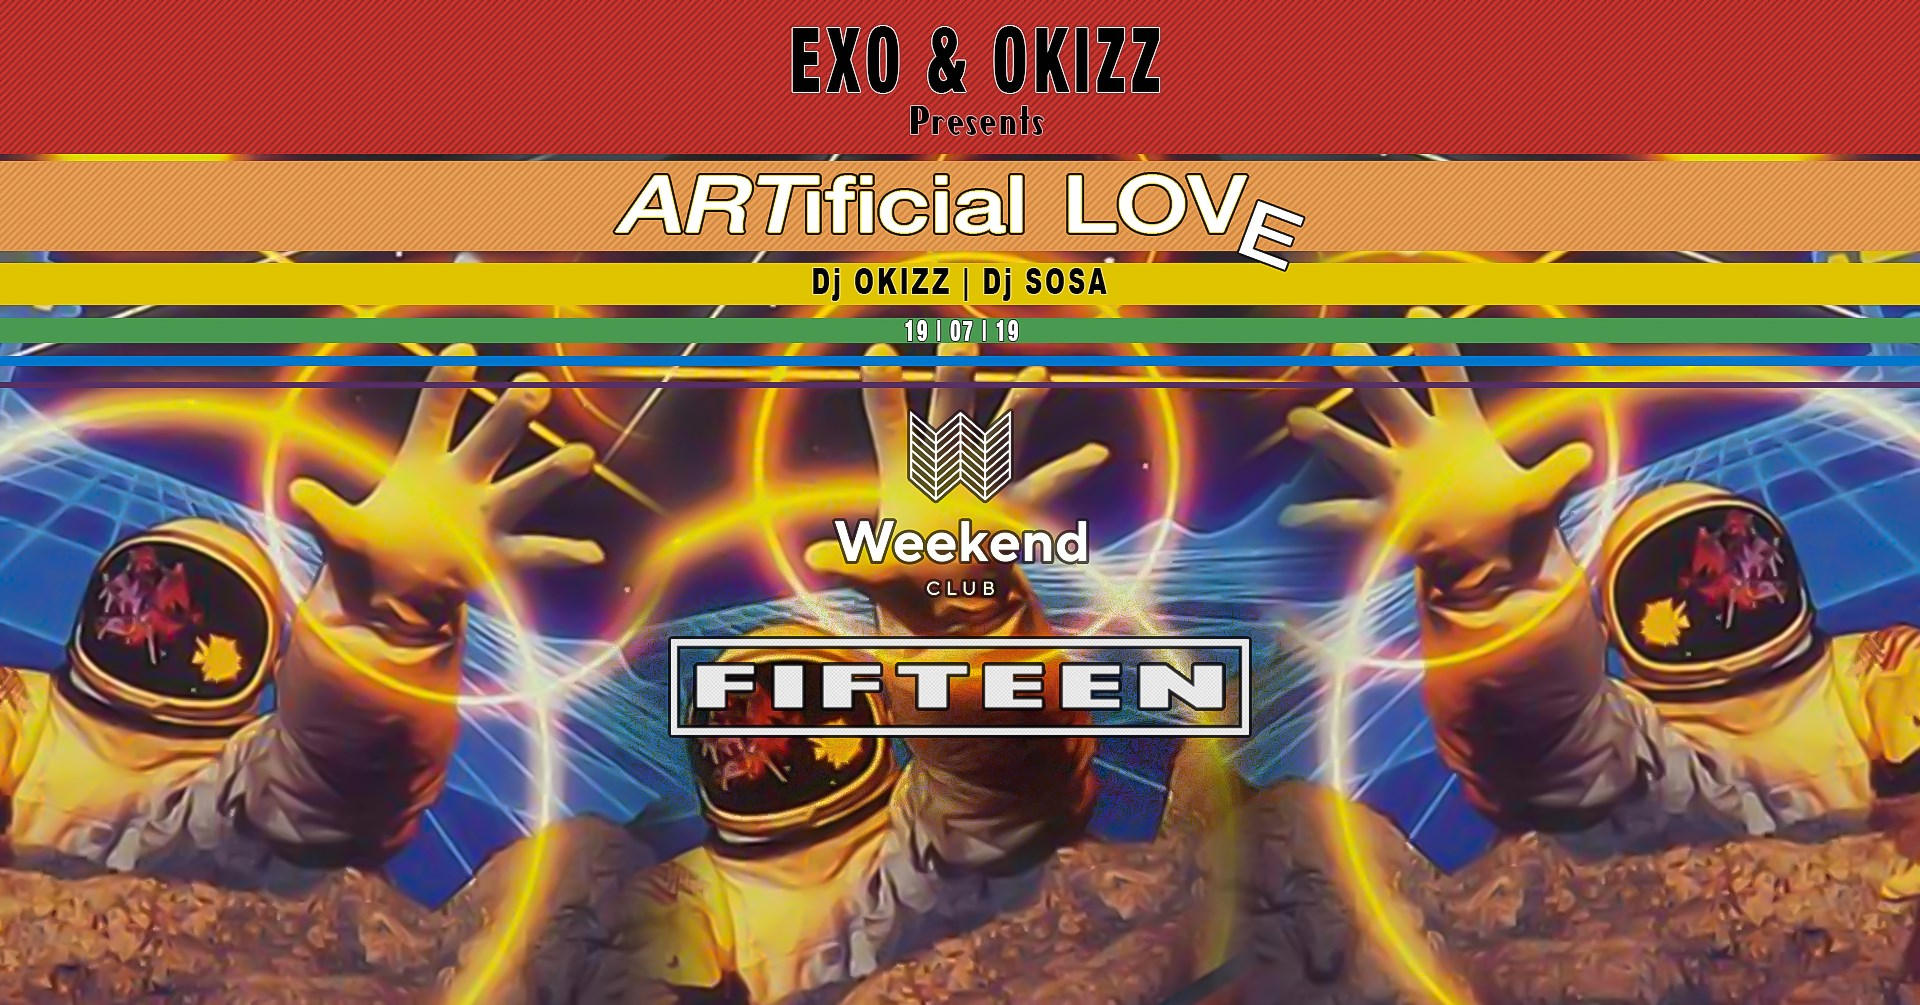 Fifteen pres. Artificial Love by Exo & Okizz  We want to create a spot for people with open minded visions of music & fashion. An esthetic look is an essential step to treat your body like it deserved. Be curious - be a part. Every Friday finest Hip Hop with best local and international DJs.